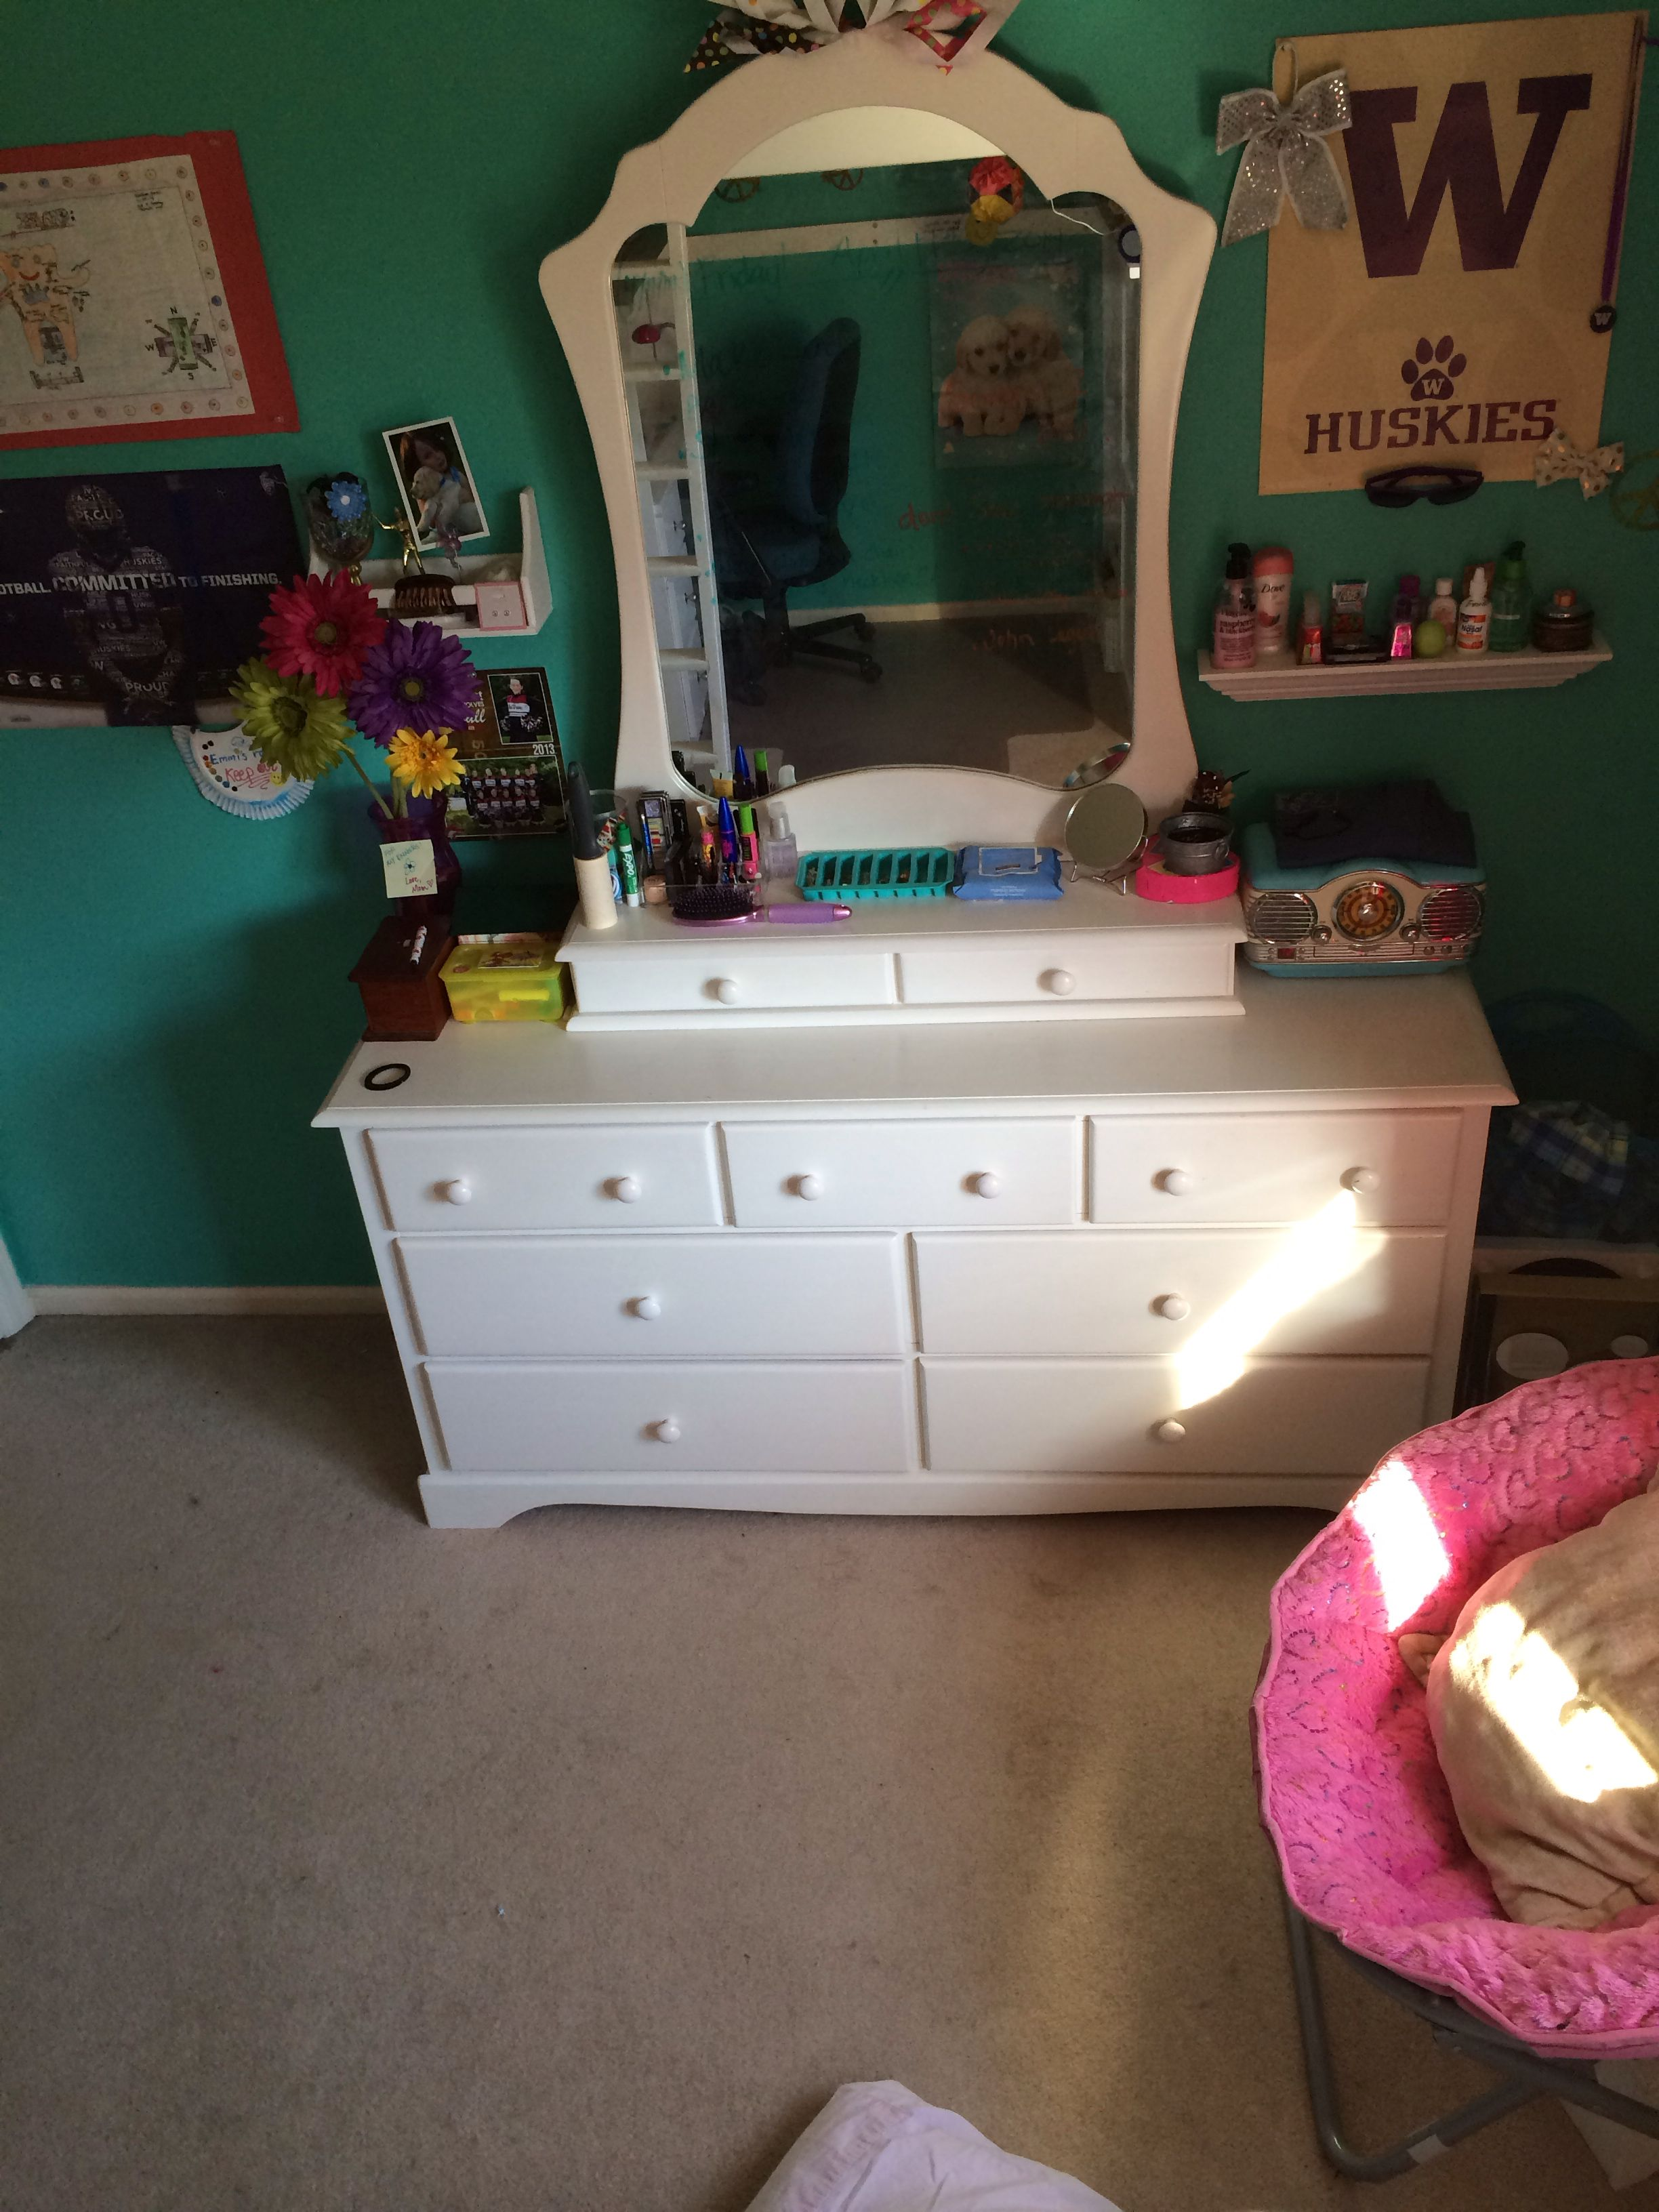 Homemade vanity out of an old dresser!